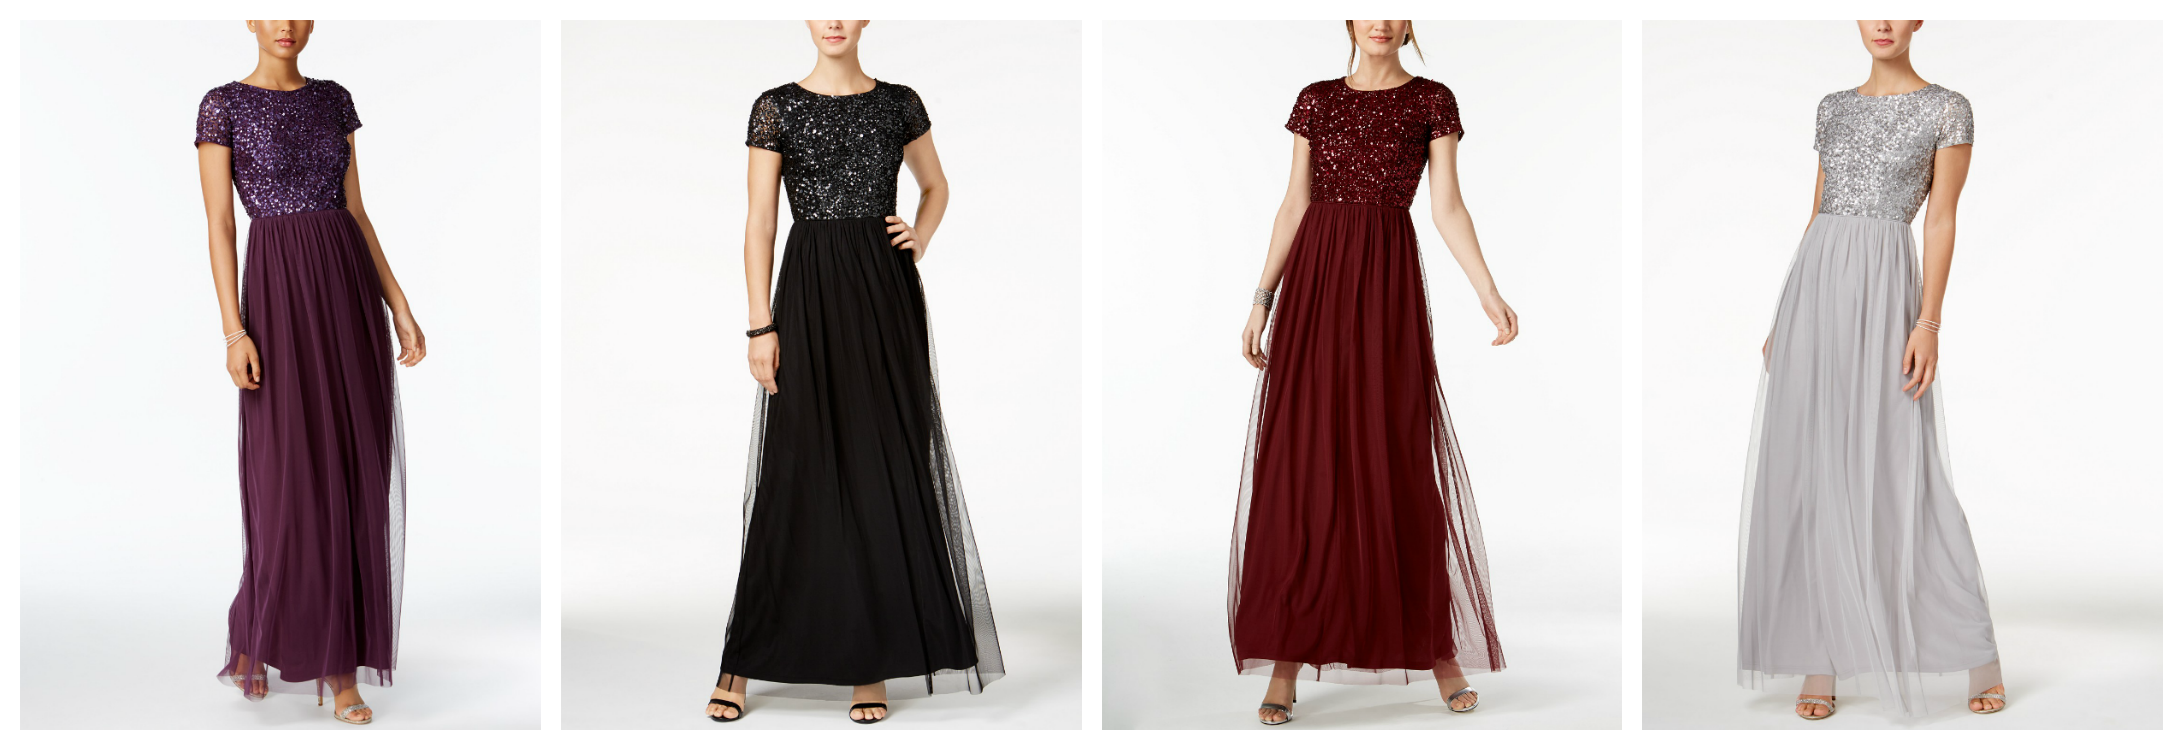 Purple, black, red wine and silver modest prom dresses with sequins from Adrianna Papell.